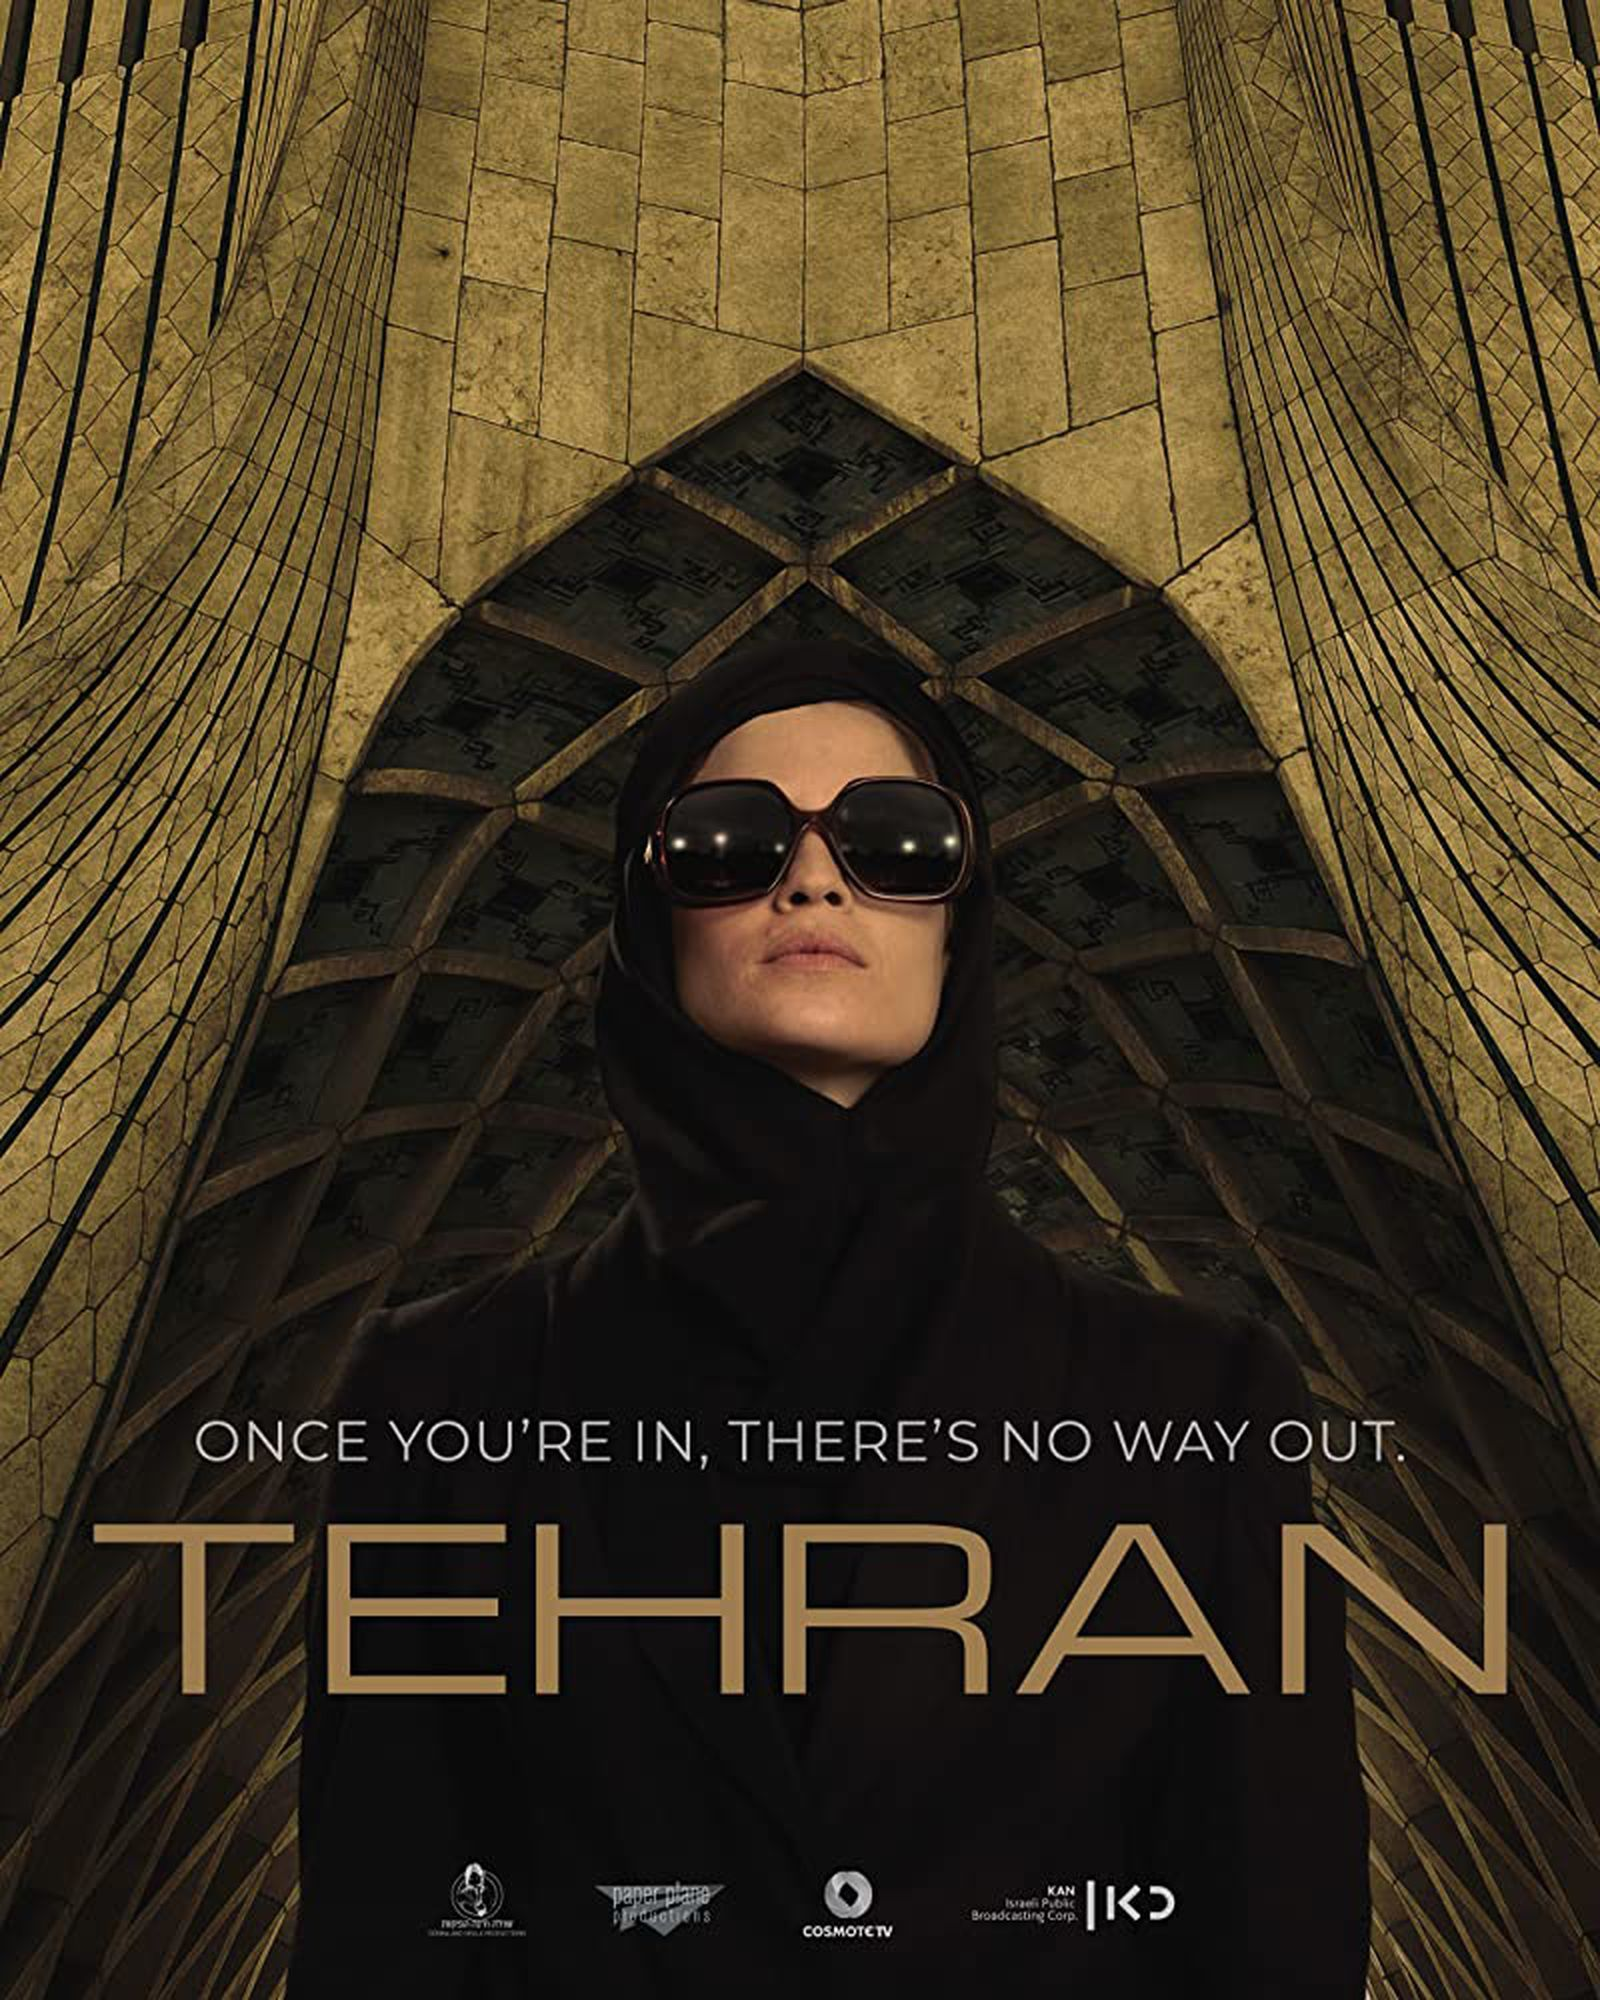 Apple TV+ ups the thrills with the engrossing Tehran